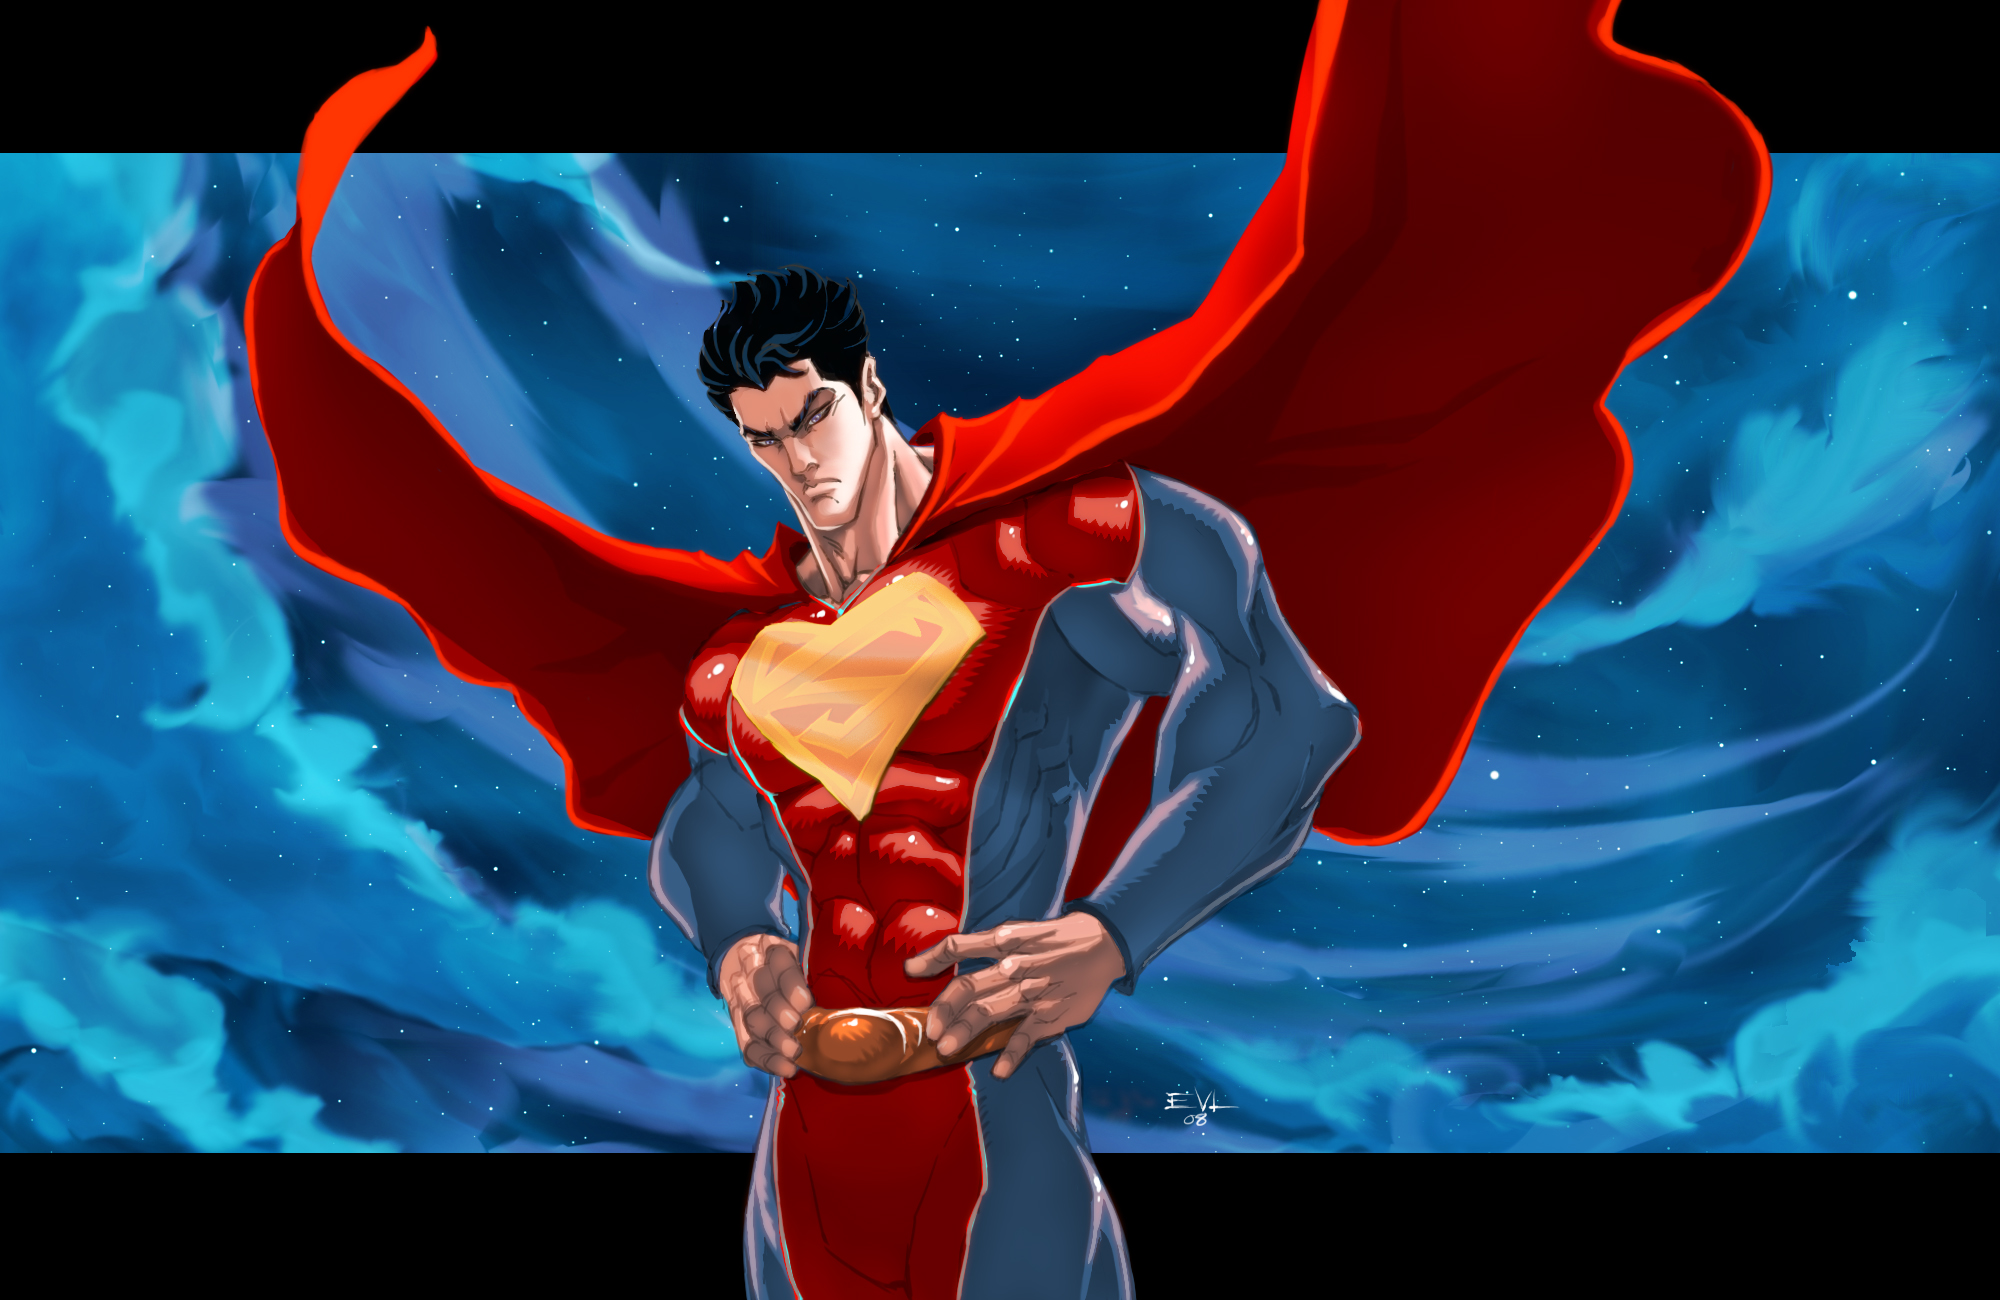 superman comic art wallpaper - photo #26